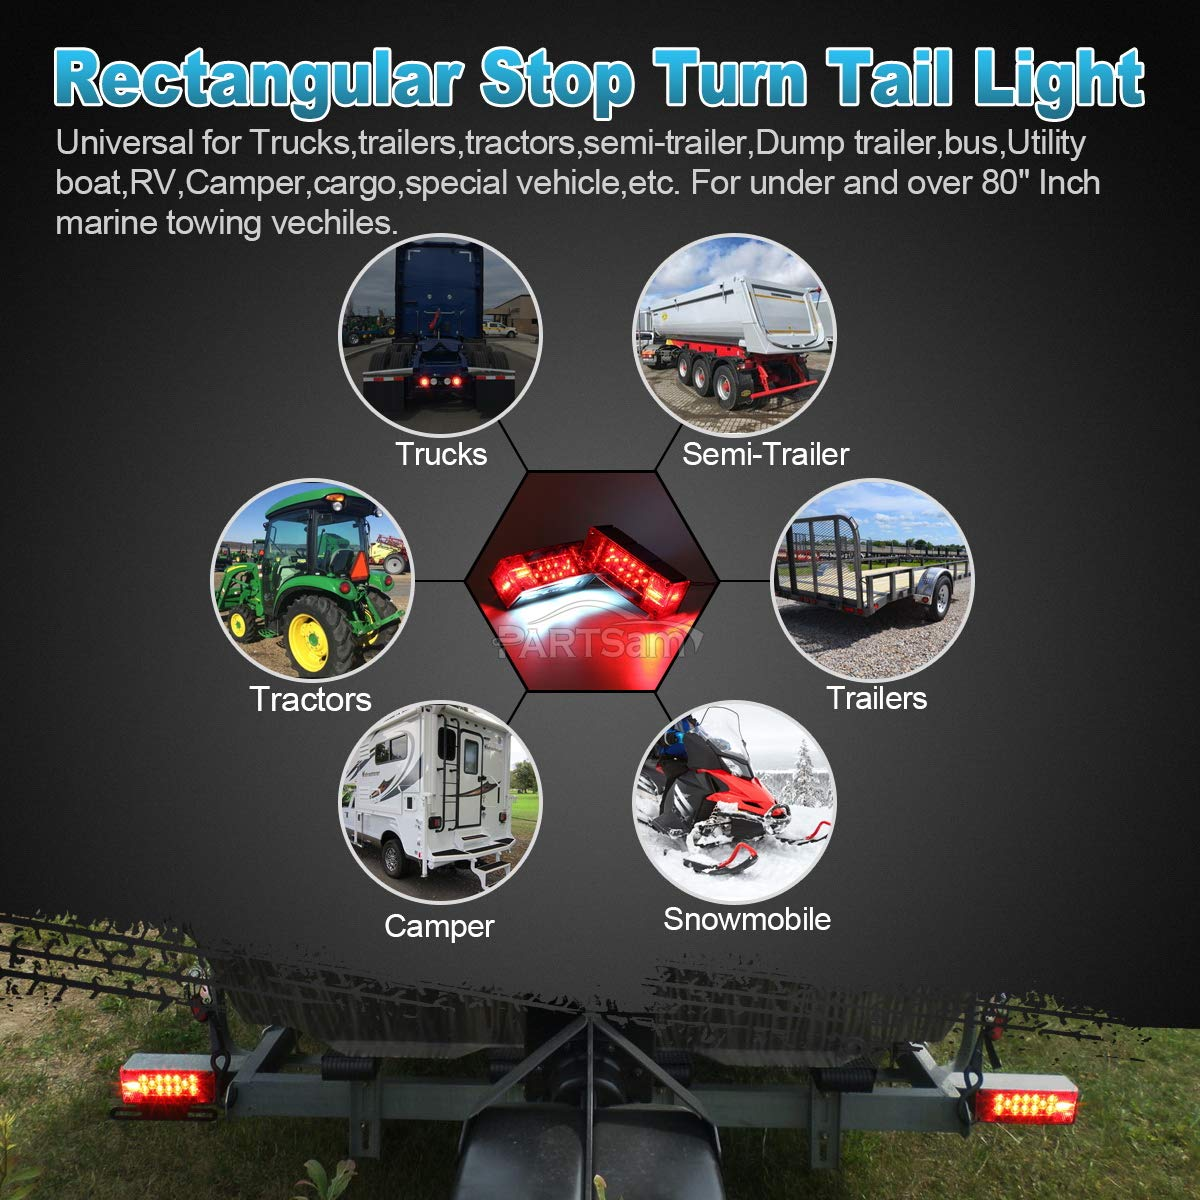 Partsam 12v Led Low Profile Submersible Rectangular Trailer Light Utility Wire Harness Kit Tail Stop Turn Running Lights For